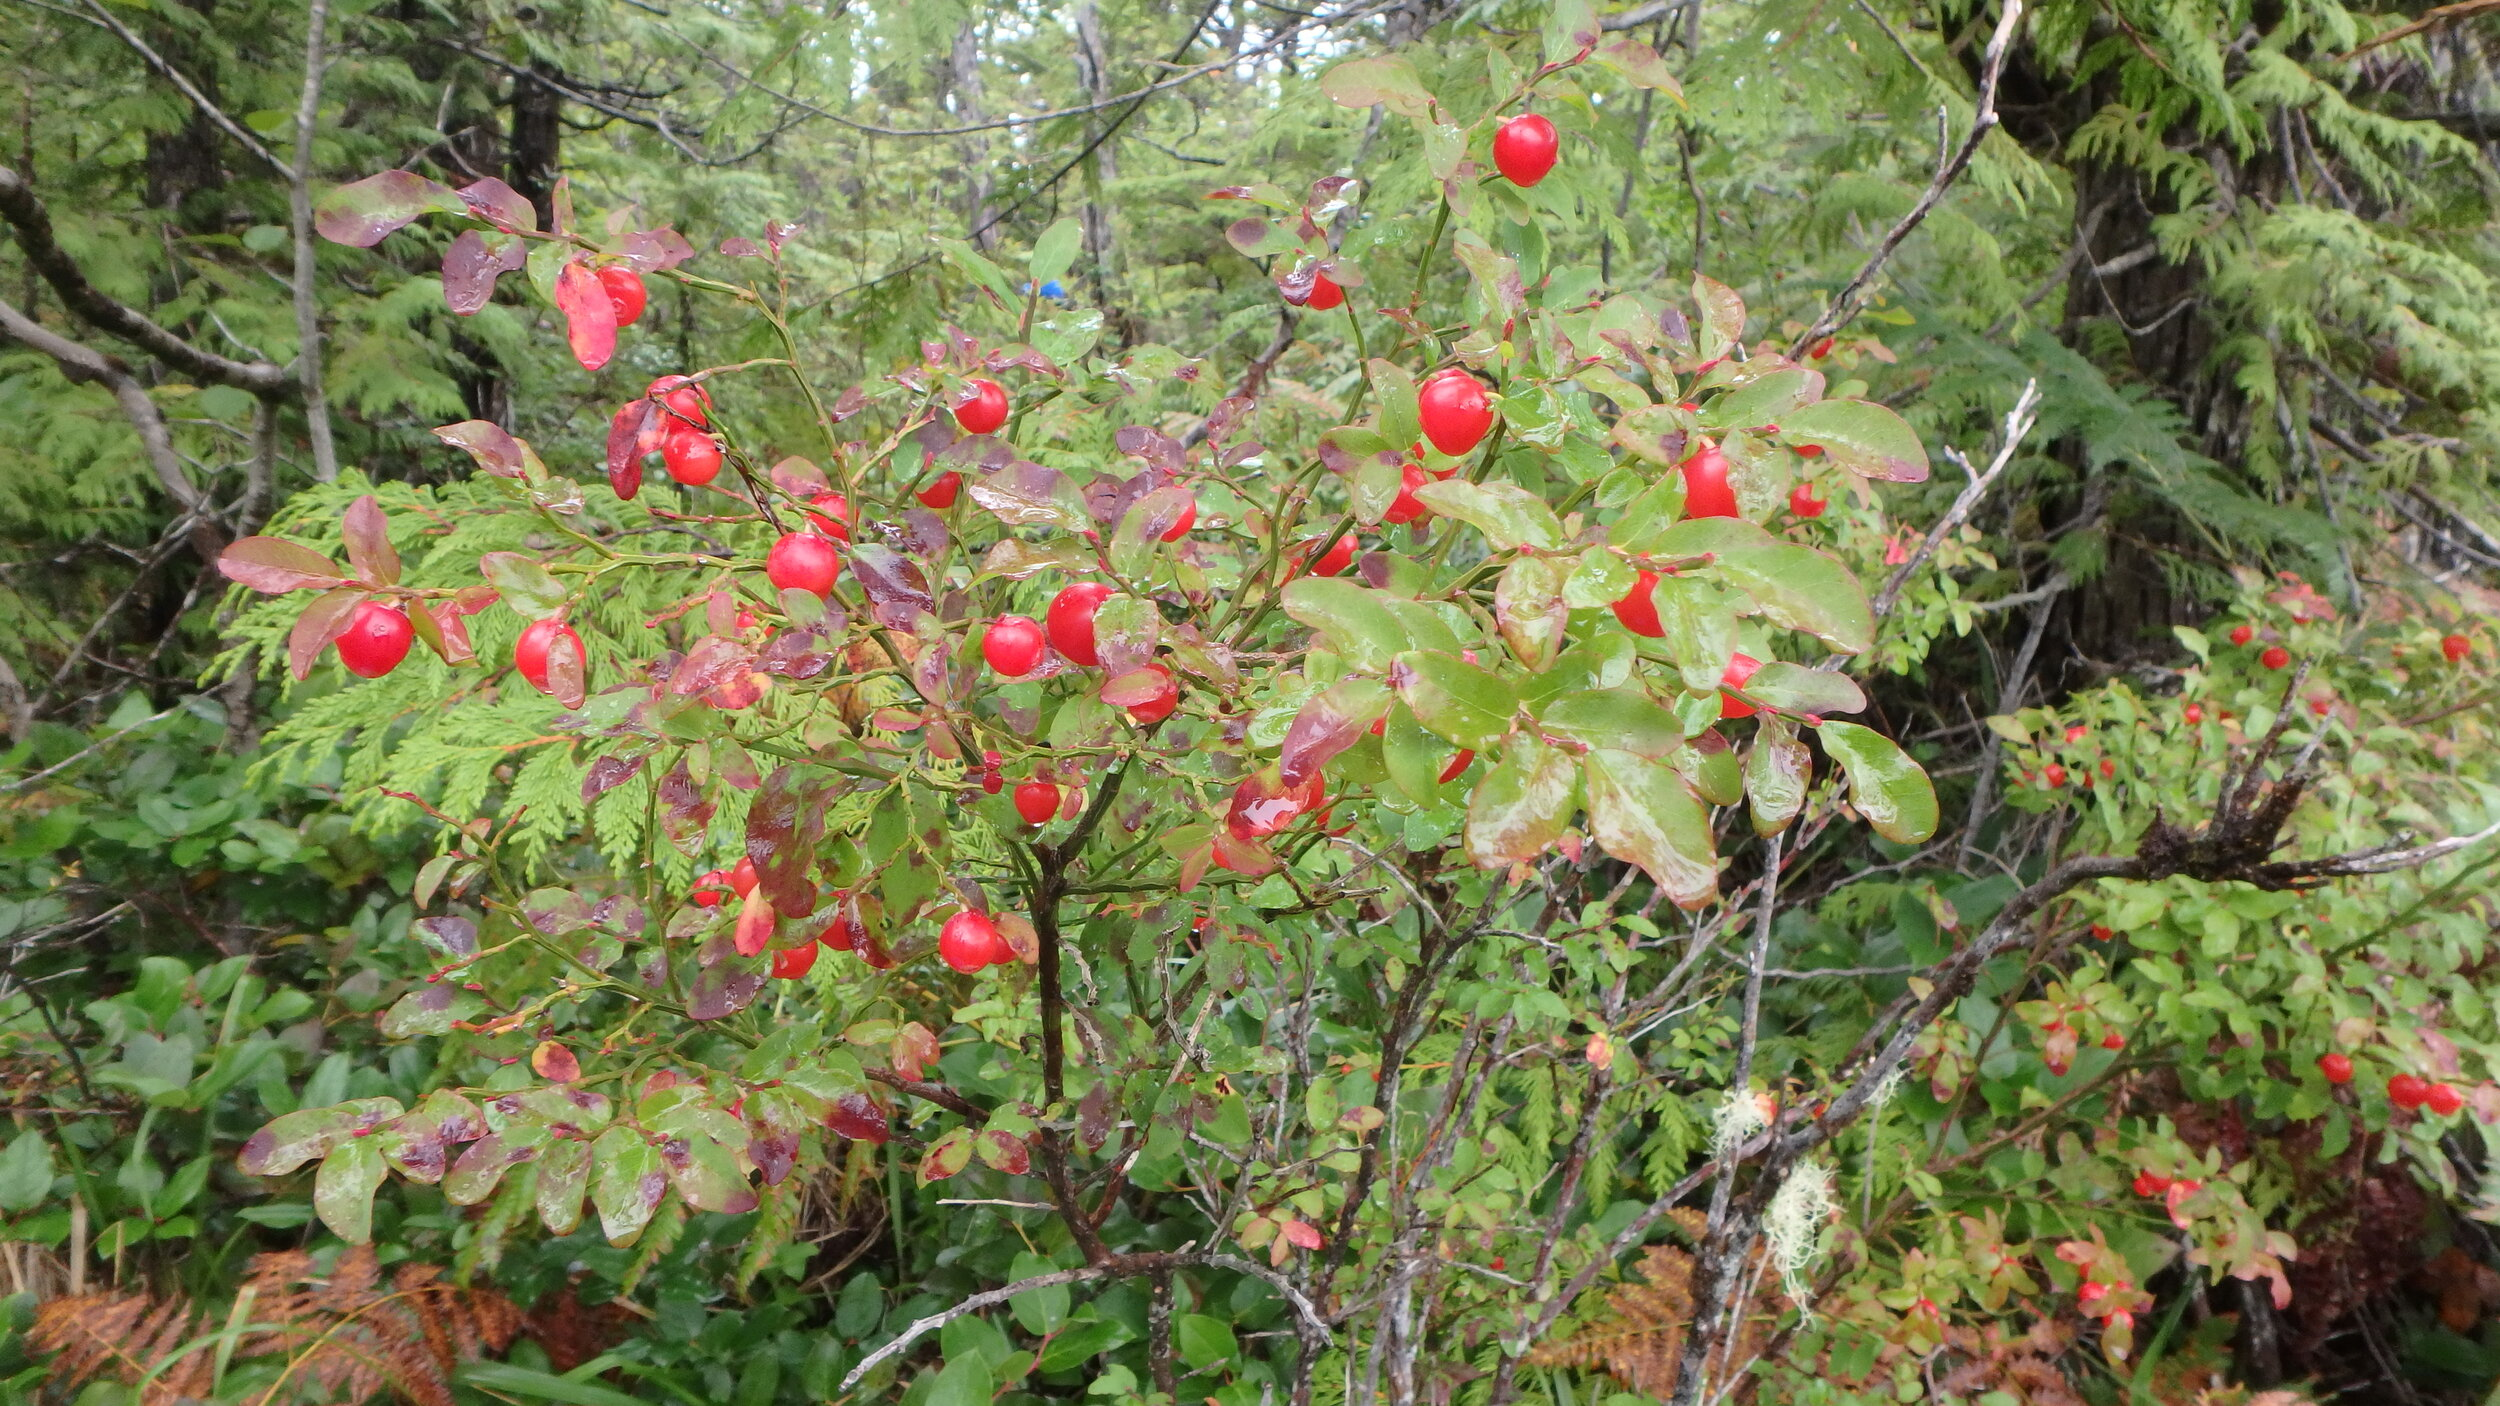 The huckleberries on the islands are the largest I have ever seen — on this bush they were the size of grapes!